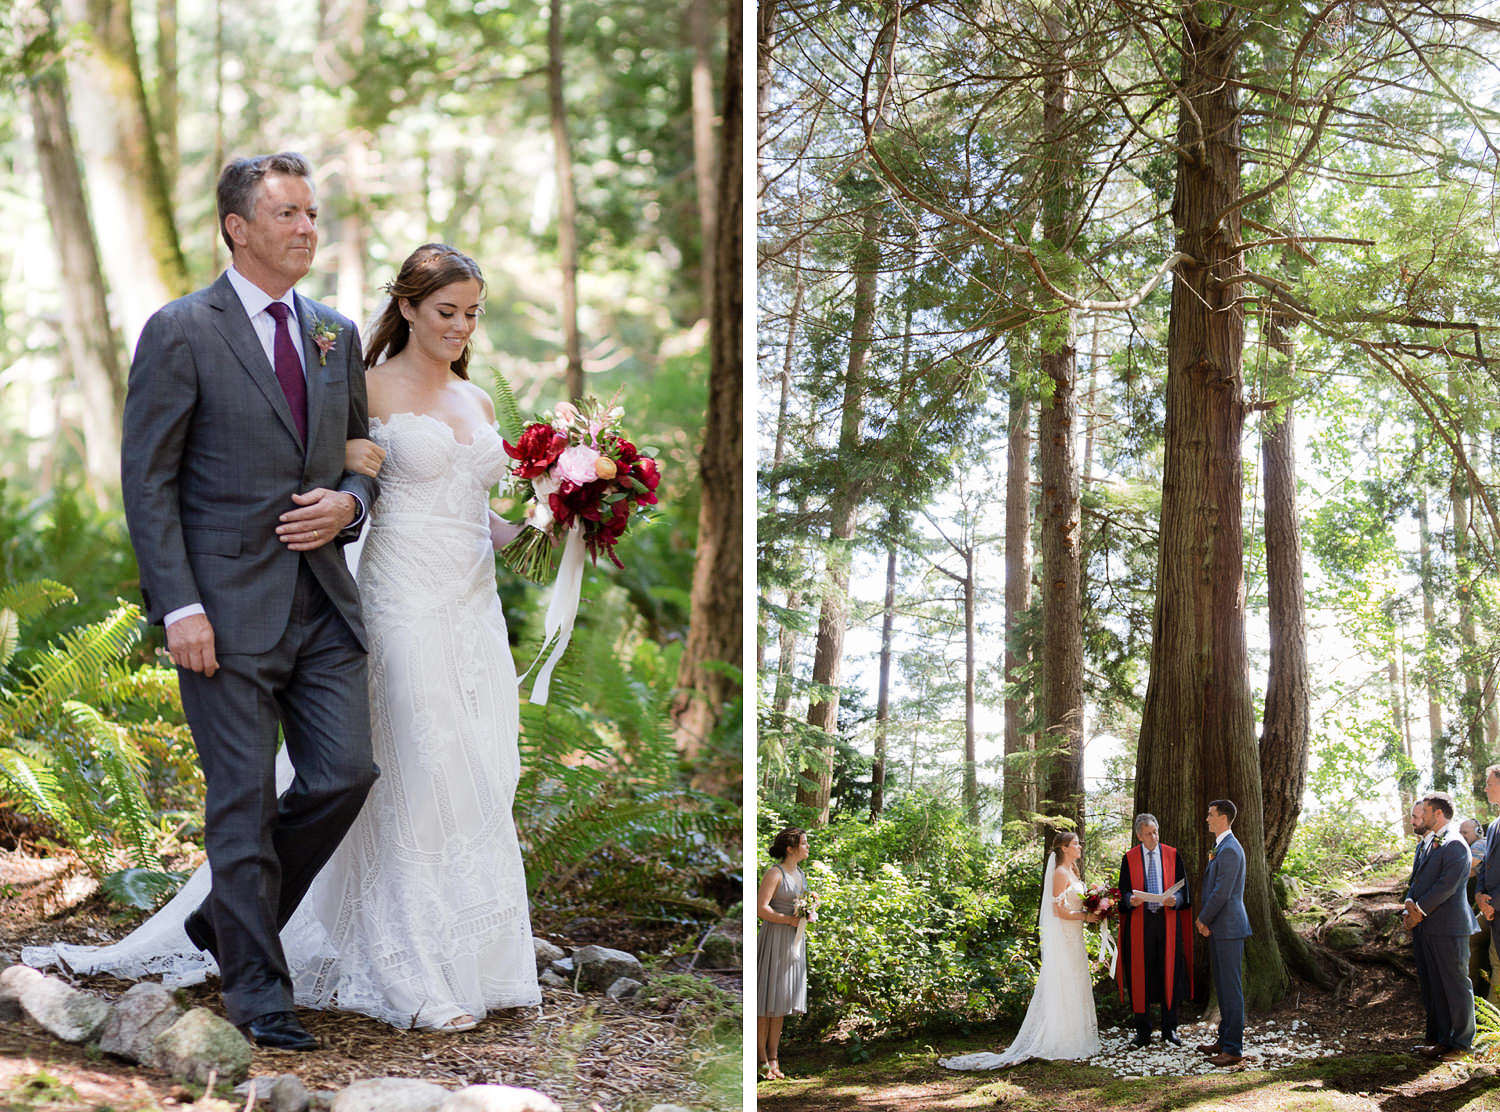 Intimate boho wedding reception into the woods -details